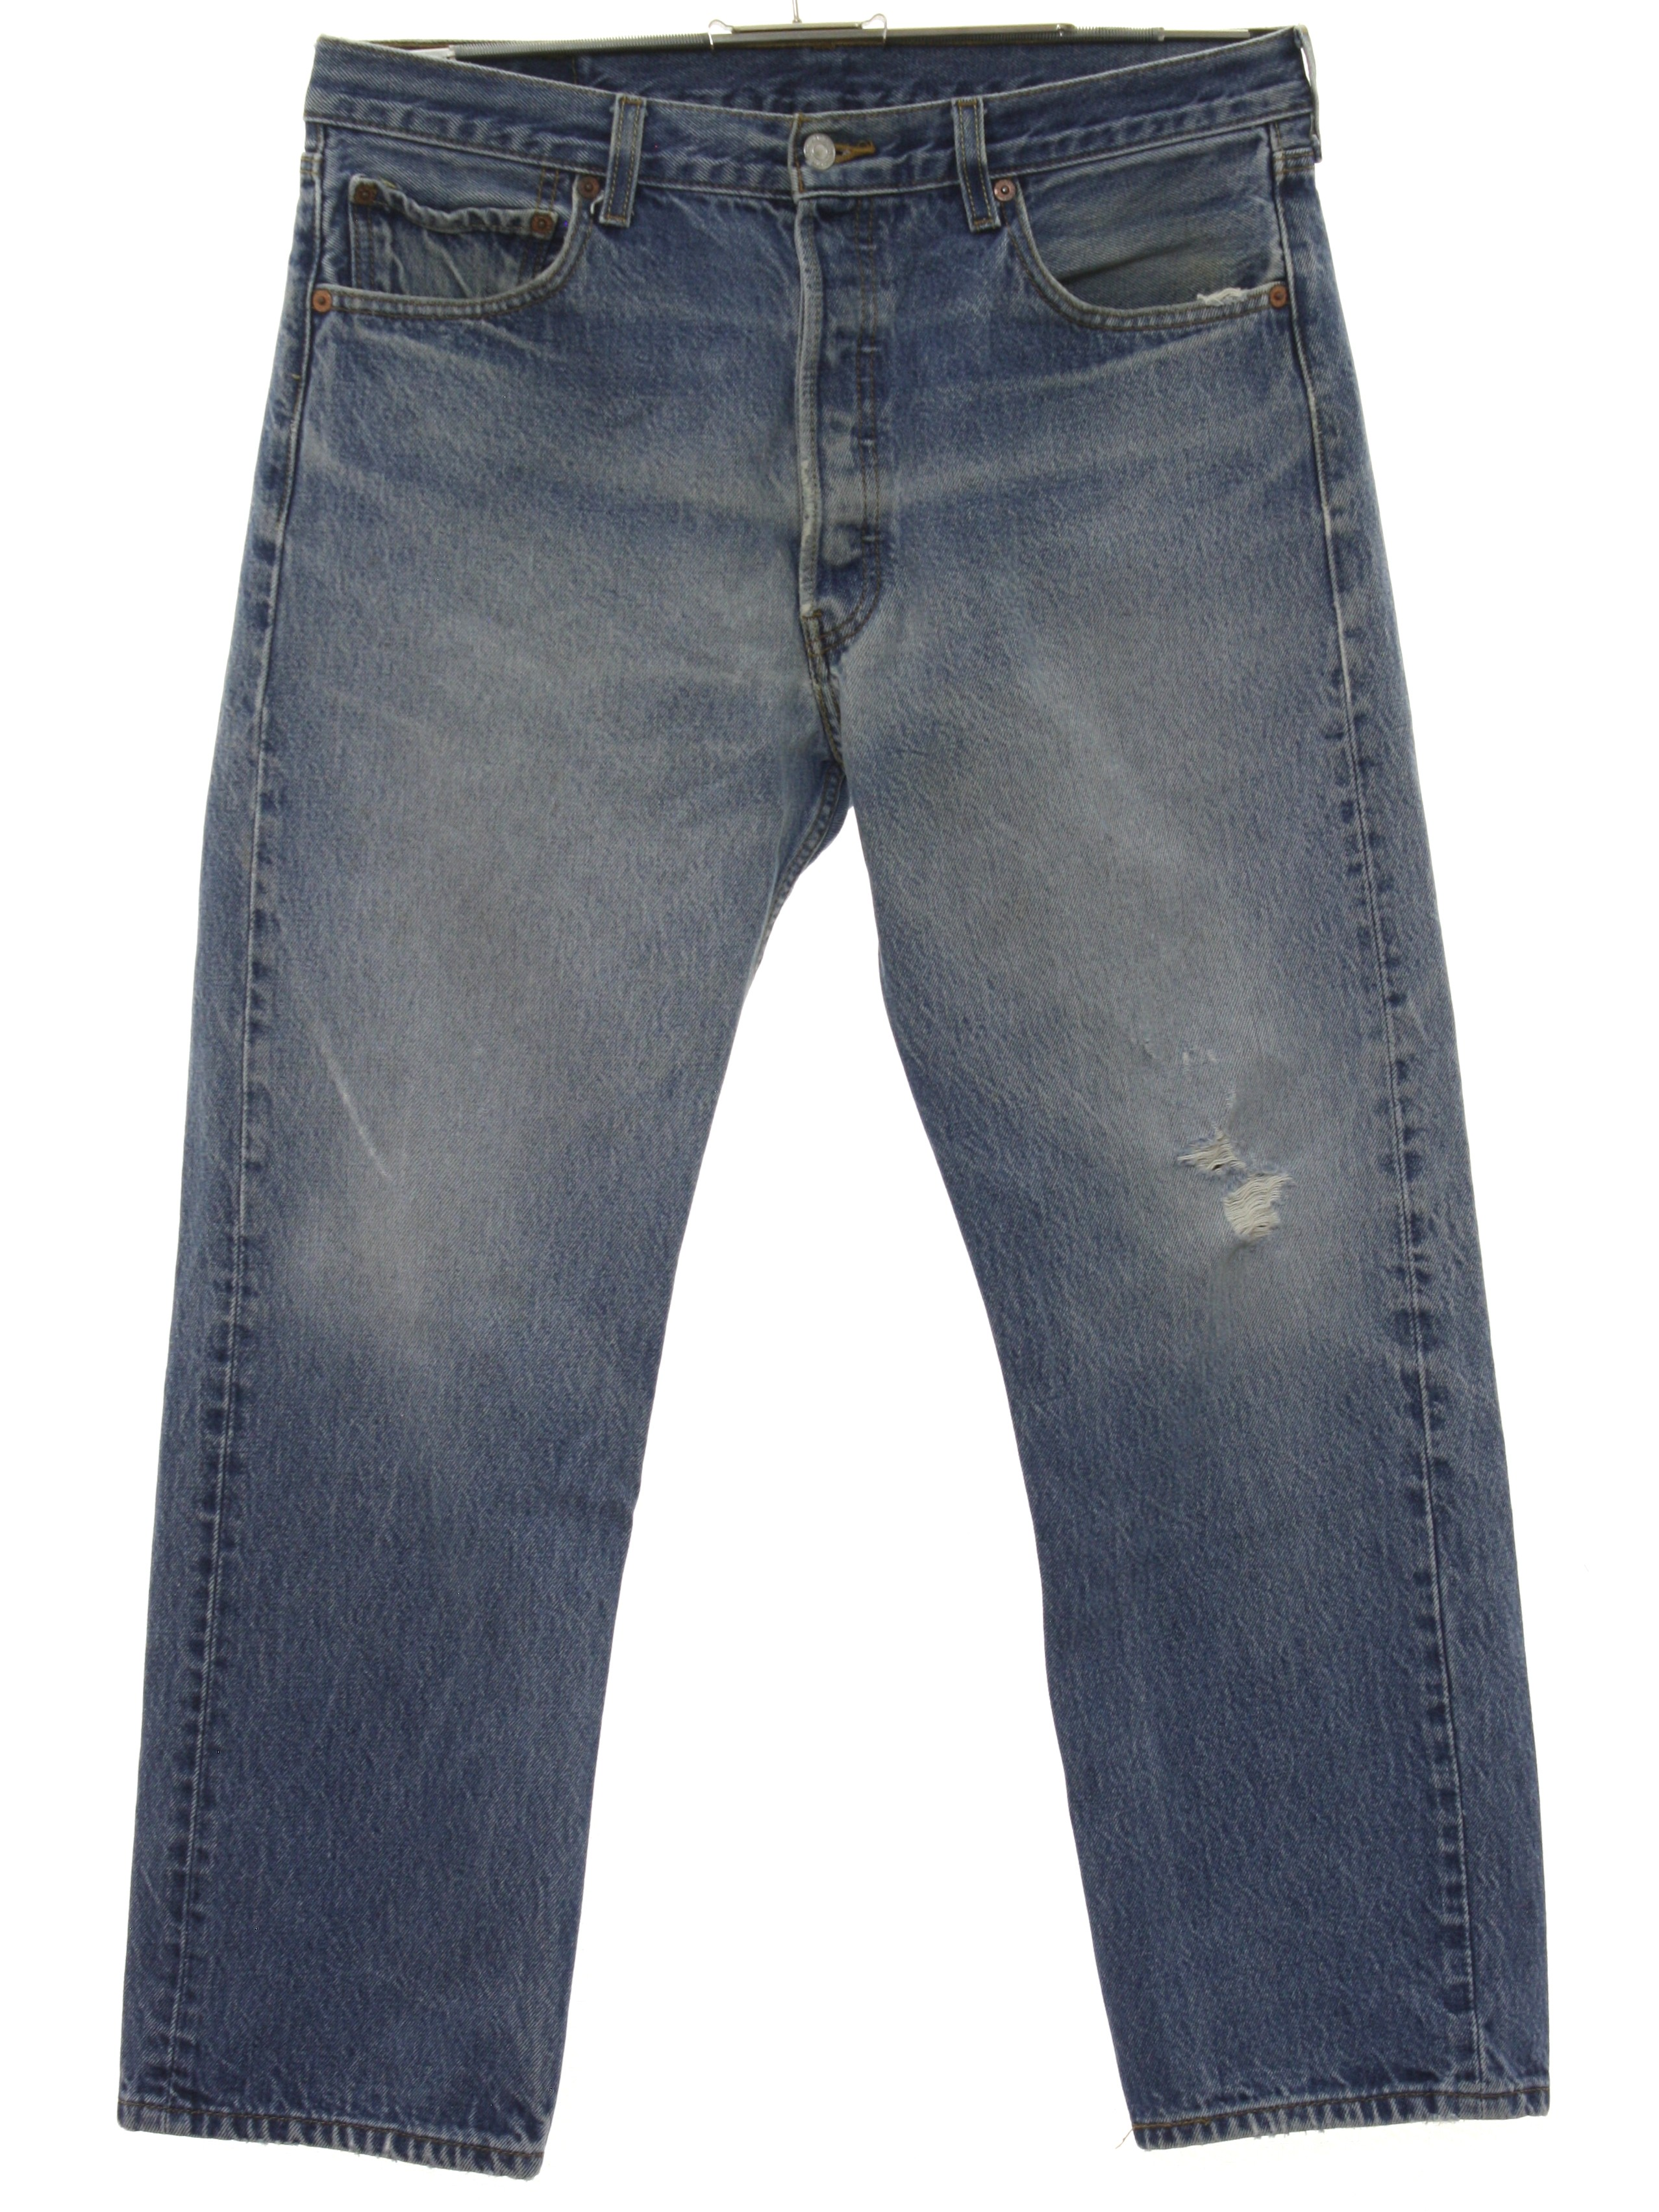 c876704df0e 1990's Vintage Levis Pants: 90s -Levis- 501- Mens heavily faded and ...